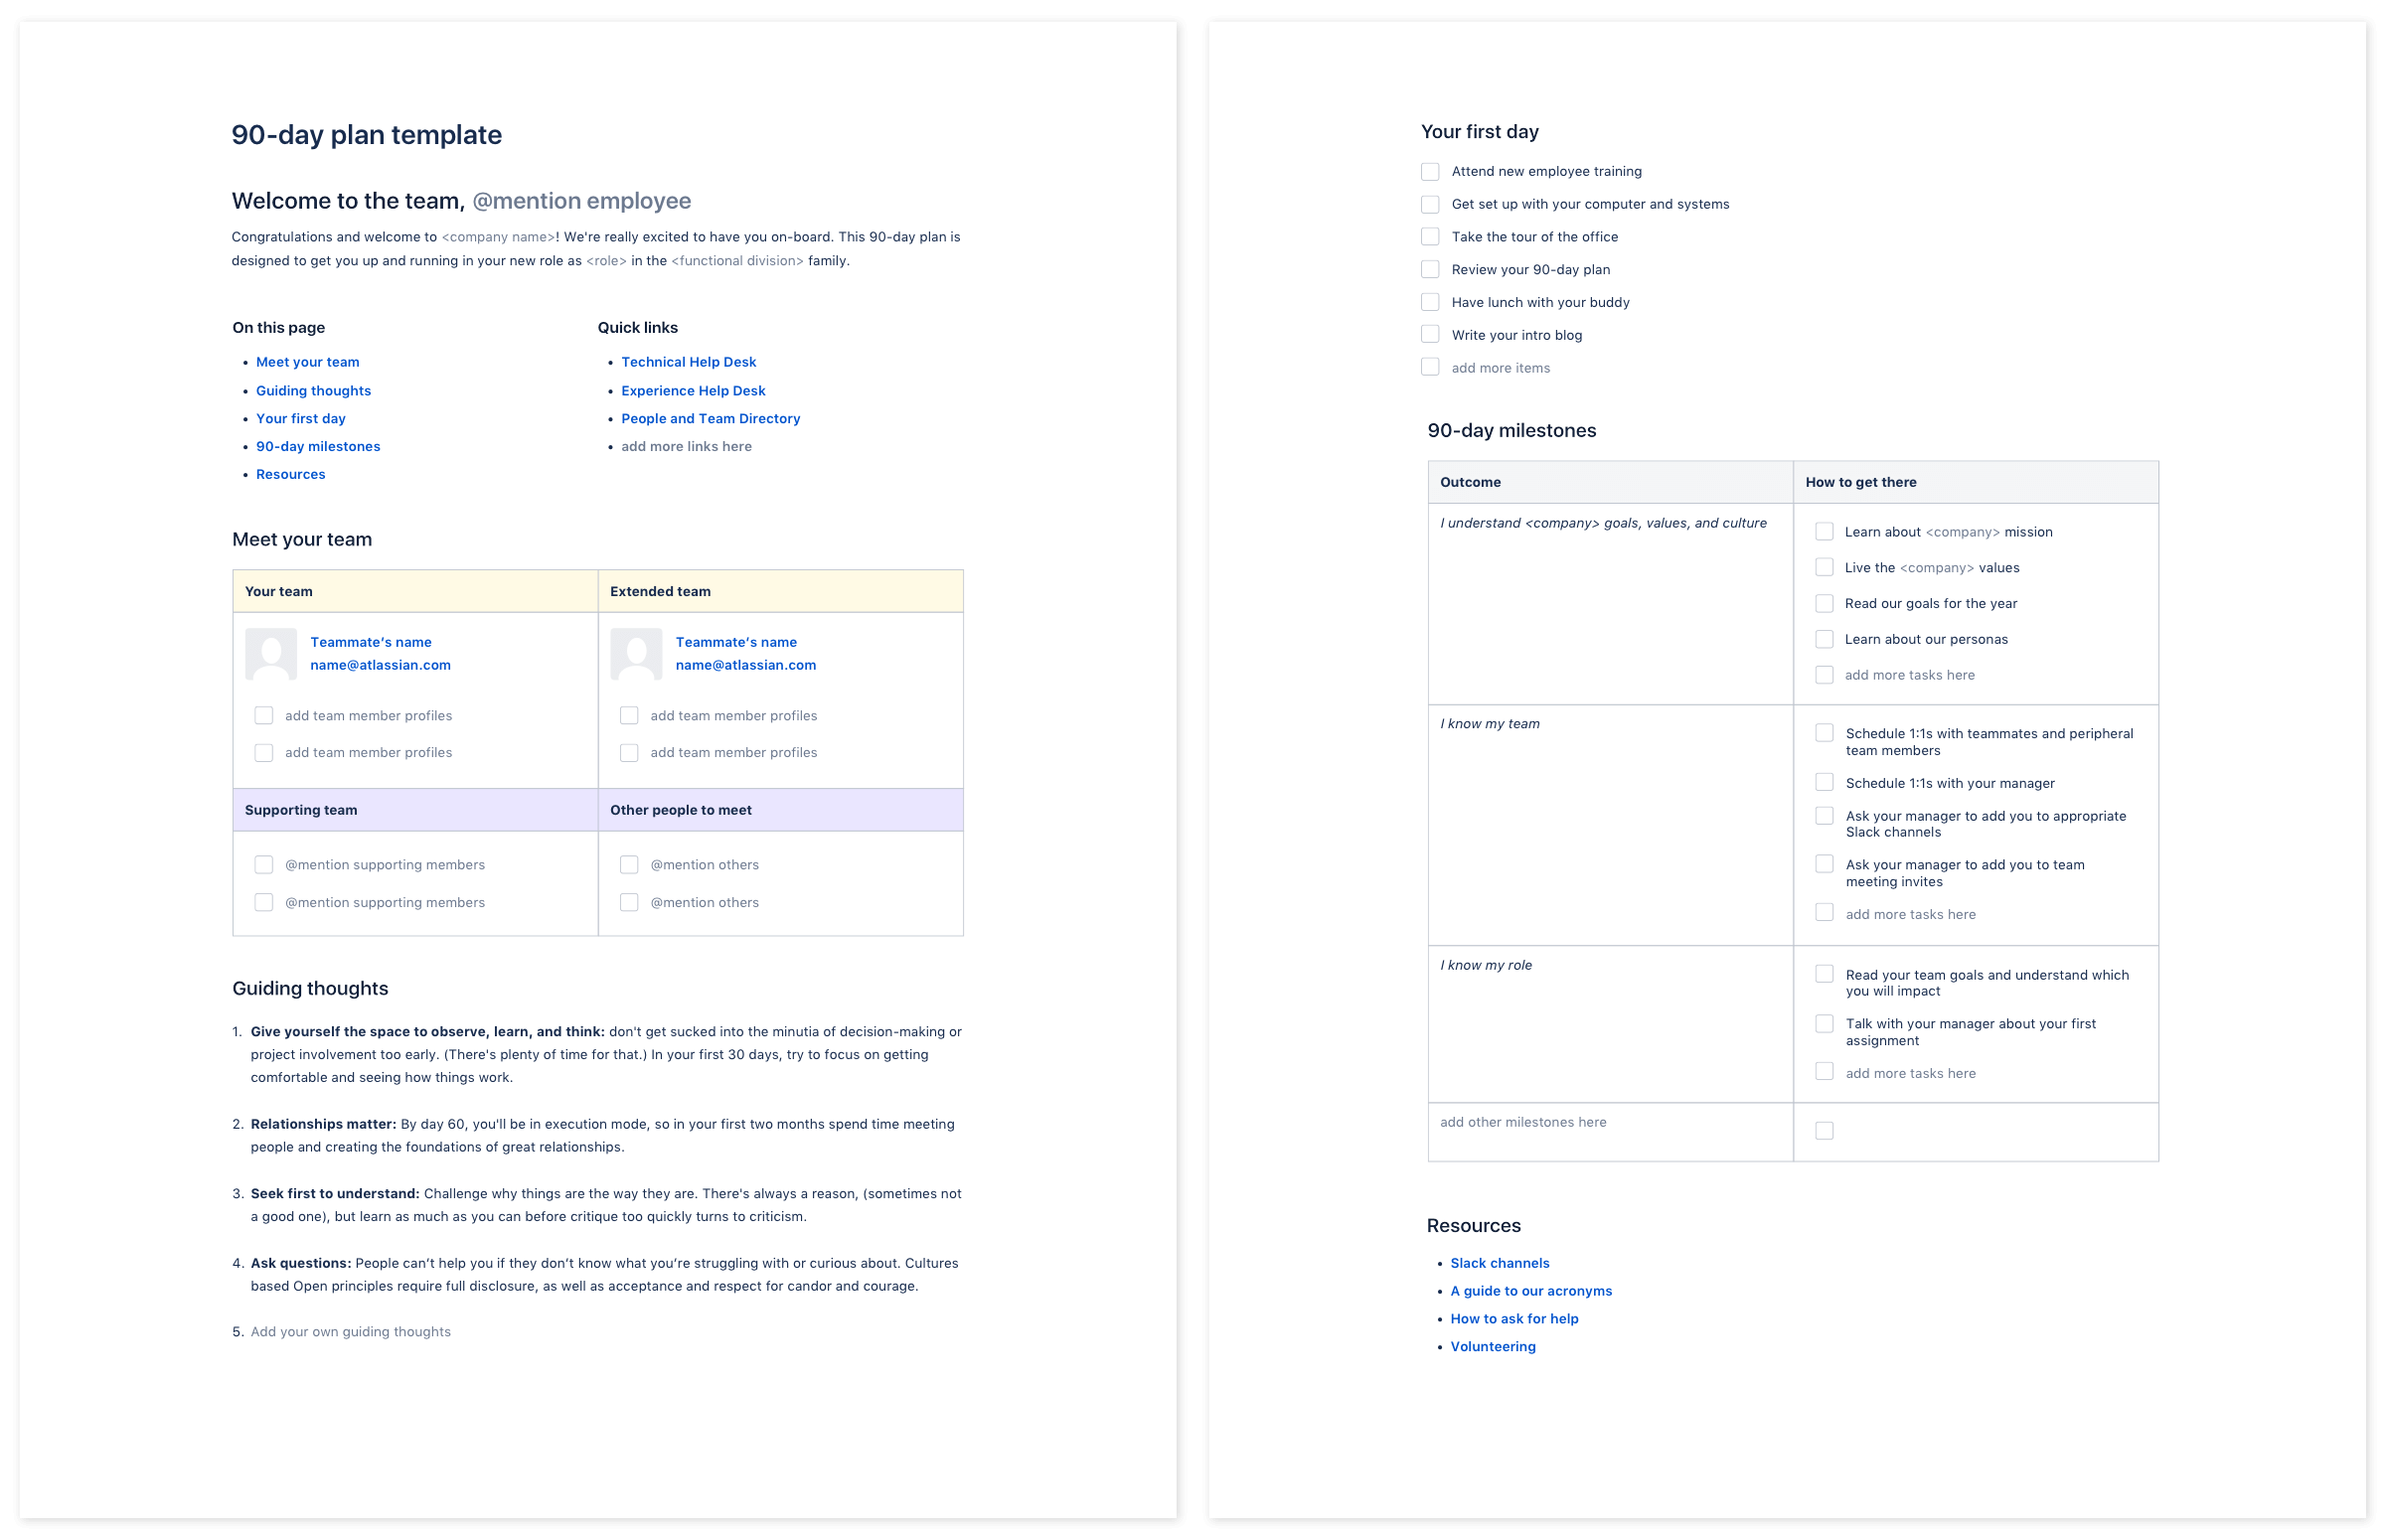 90 plan pdf for employee onboarding